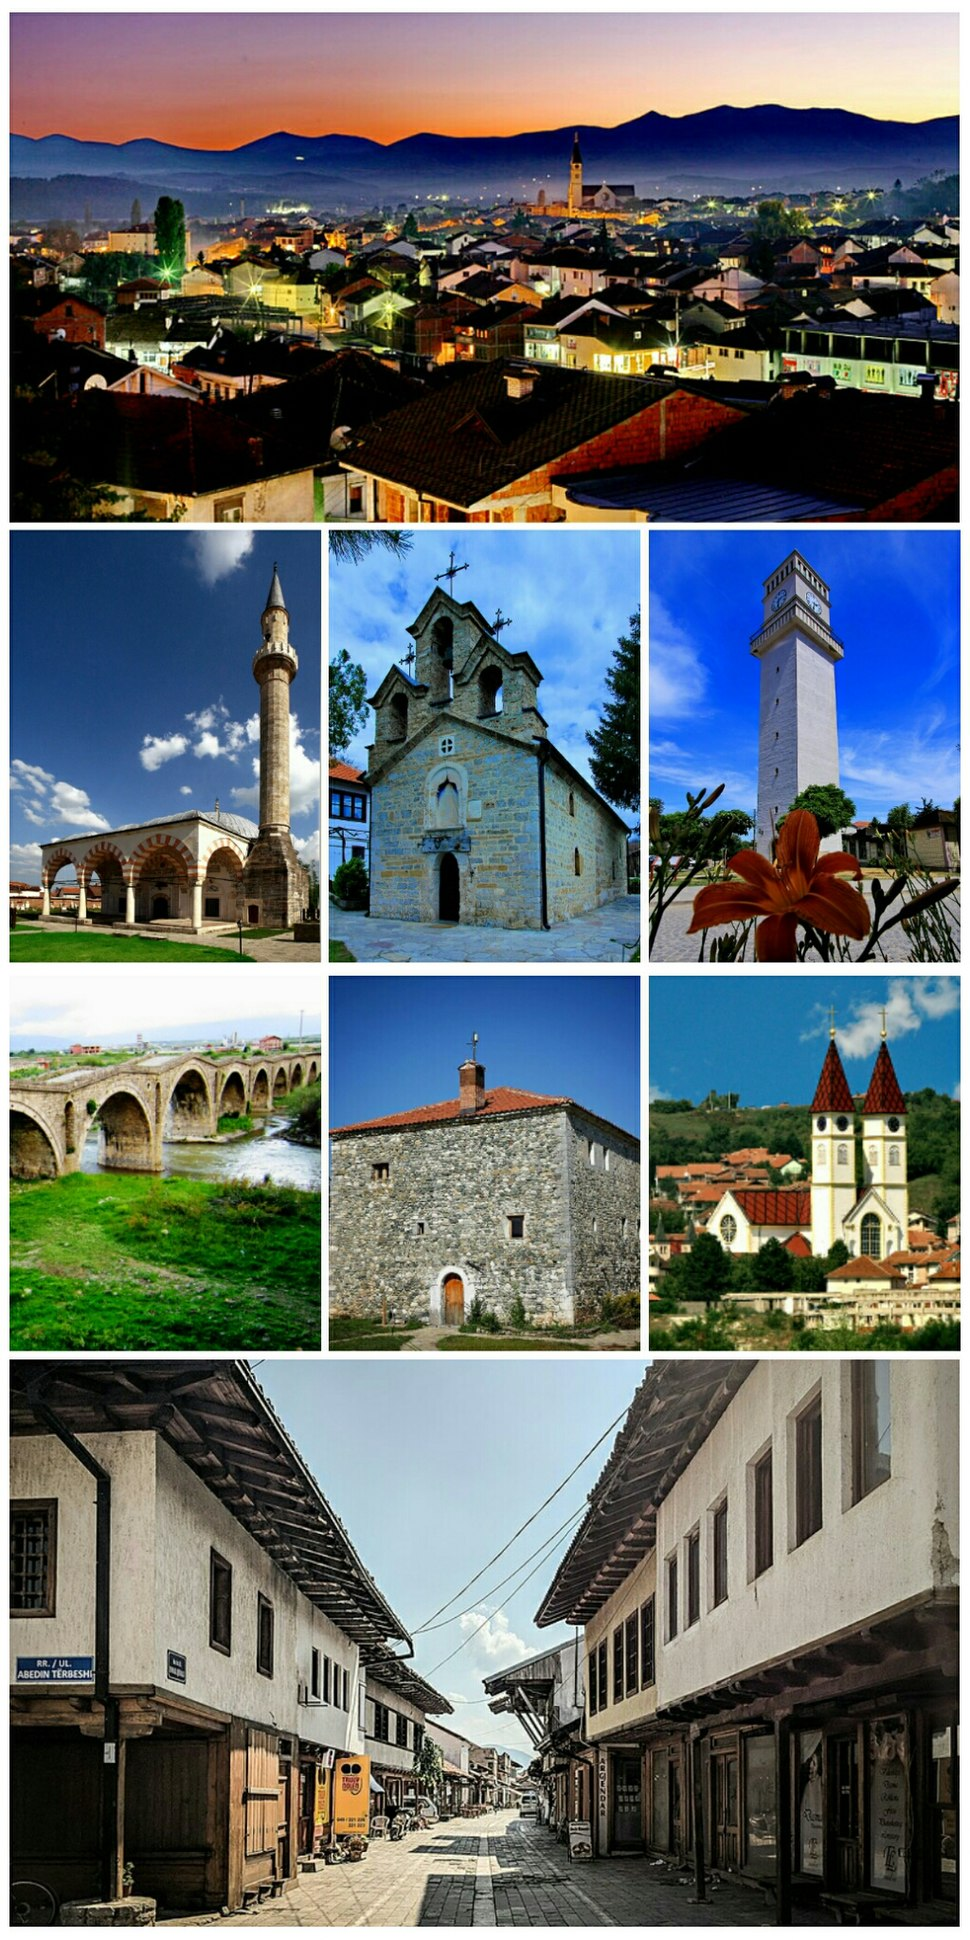 Đakovica collage